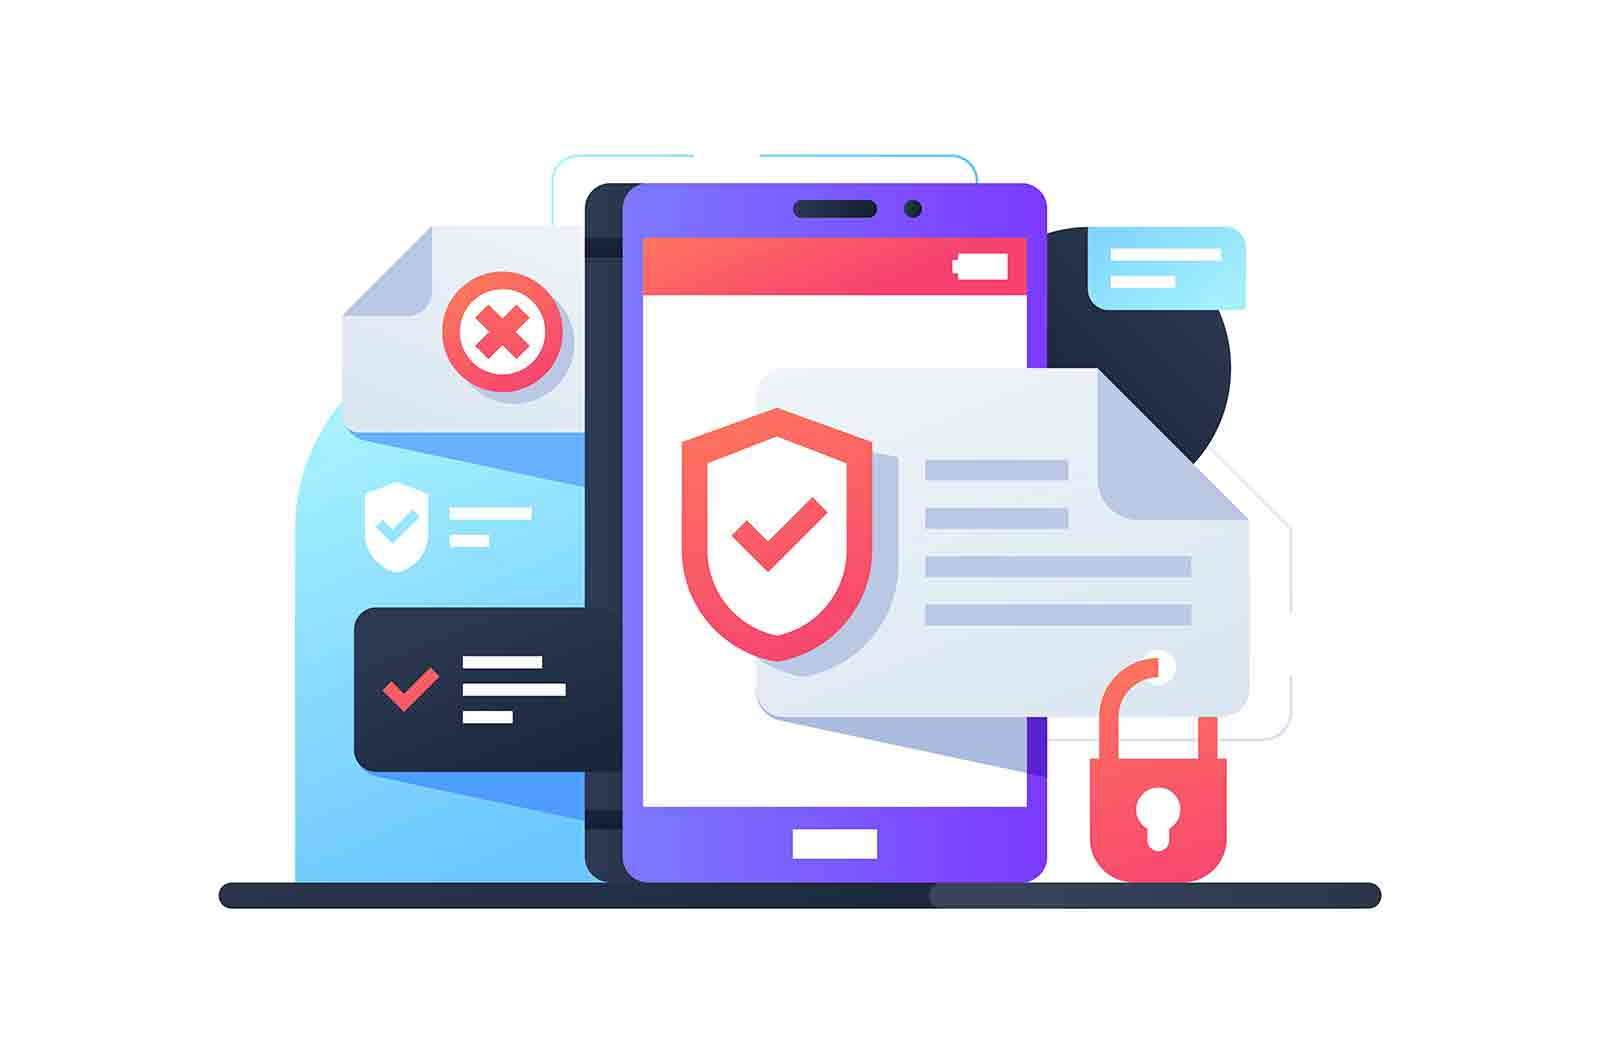 Data protection on smartphone using application. Isolated concept mobile device with app for system security. Vector illustration.